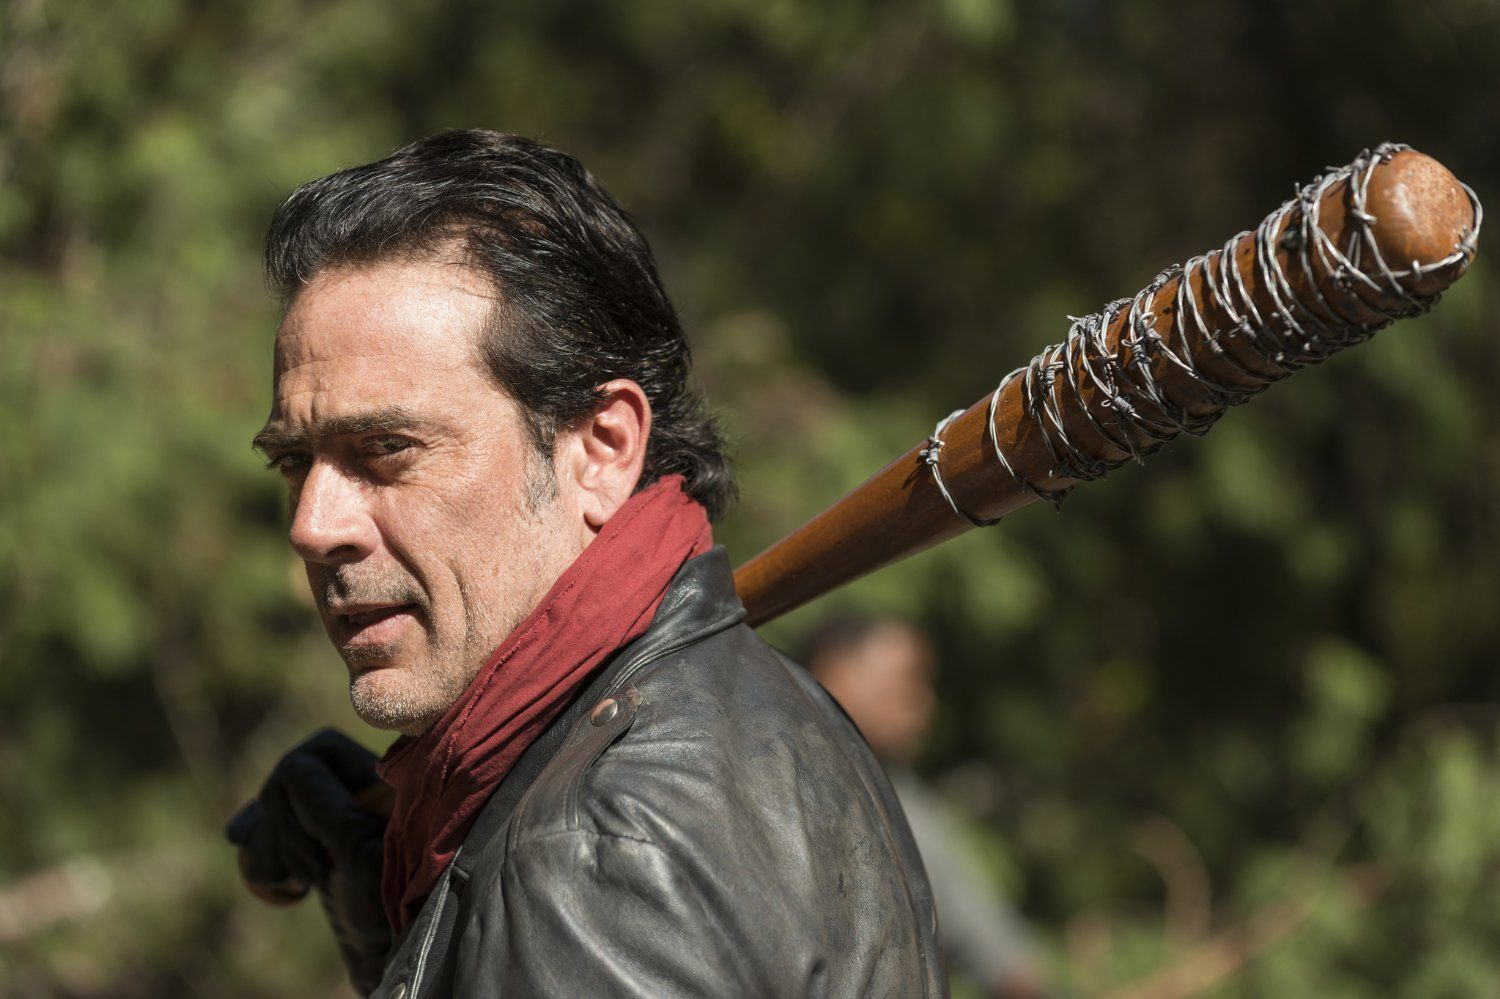 Negan, wearing a red scarf, with a barbed-wire baseball bat on his shoulder